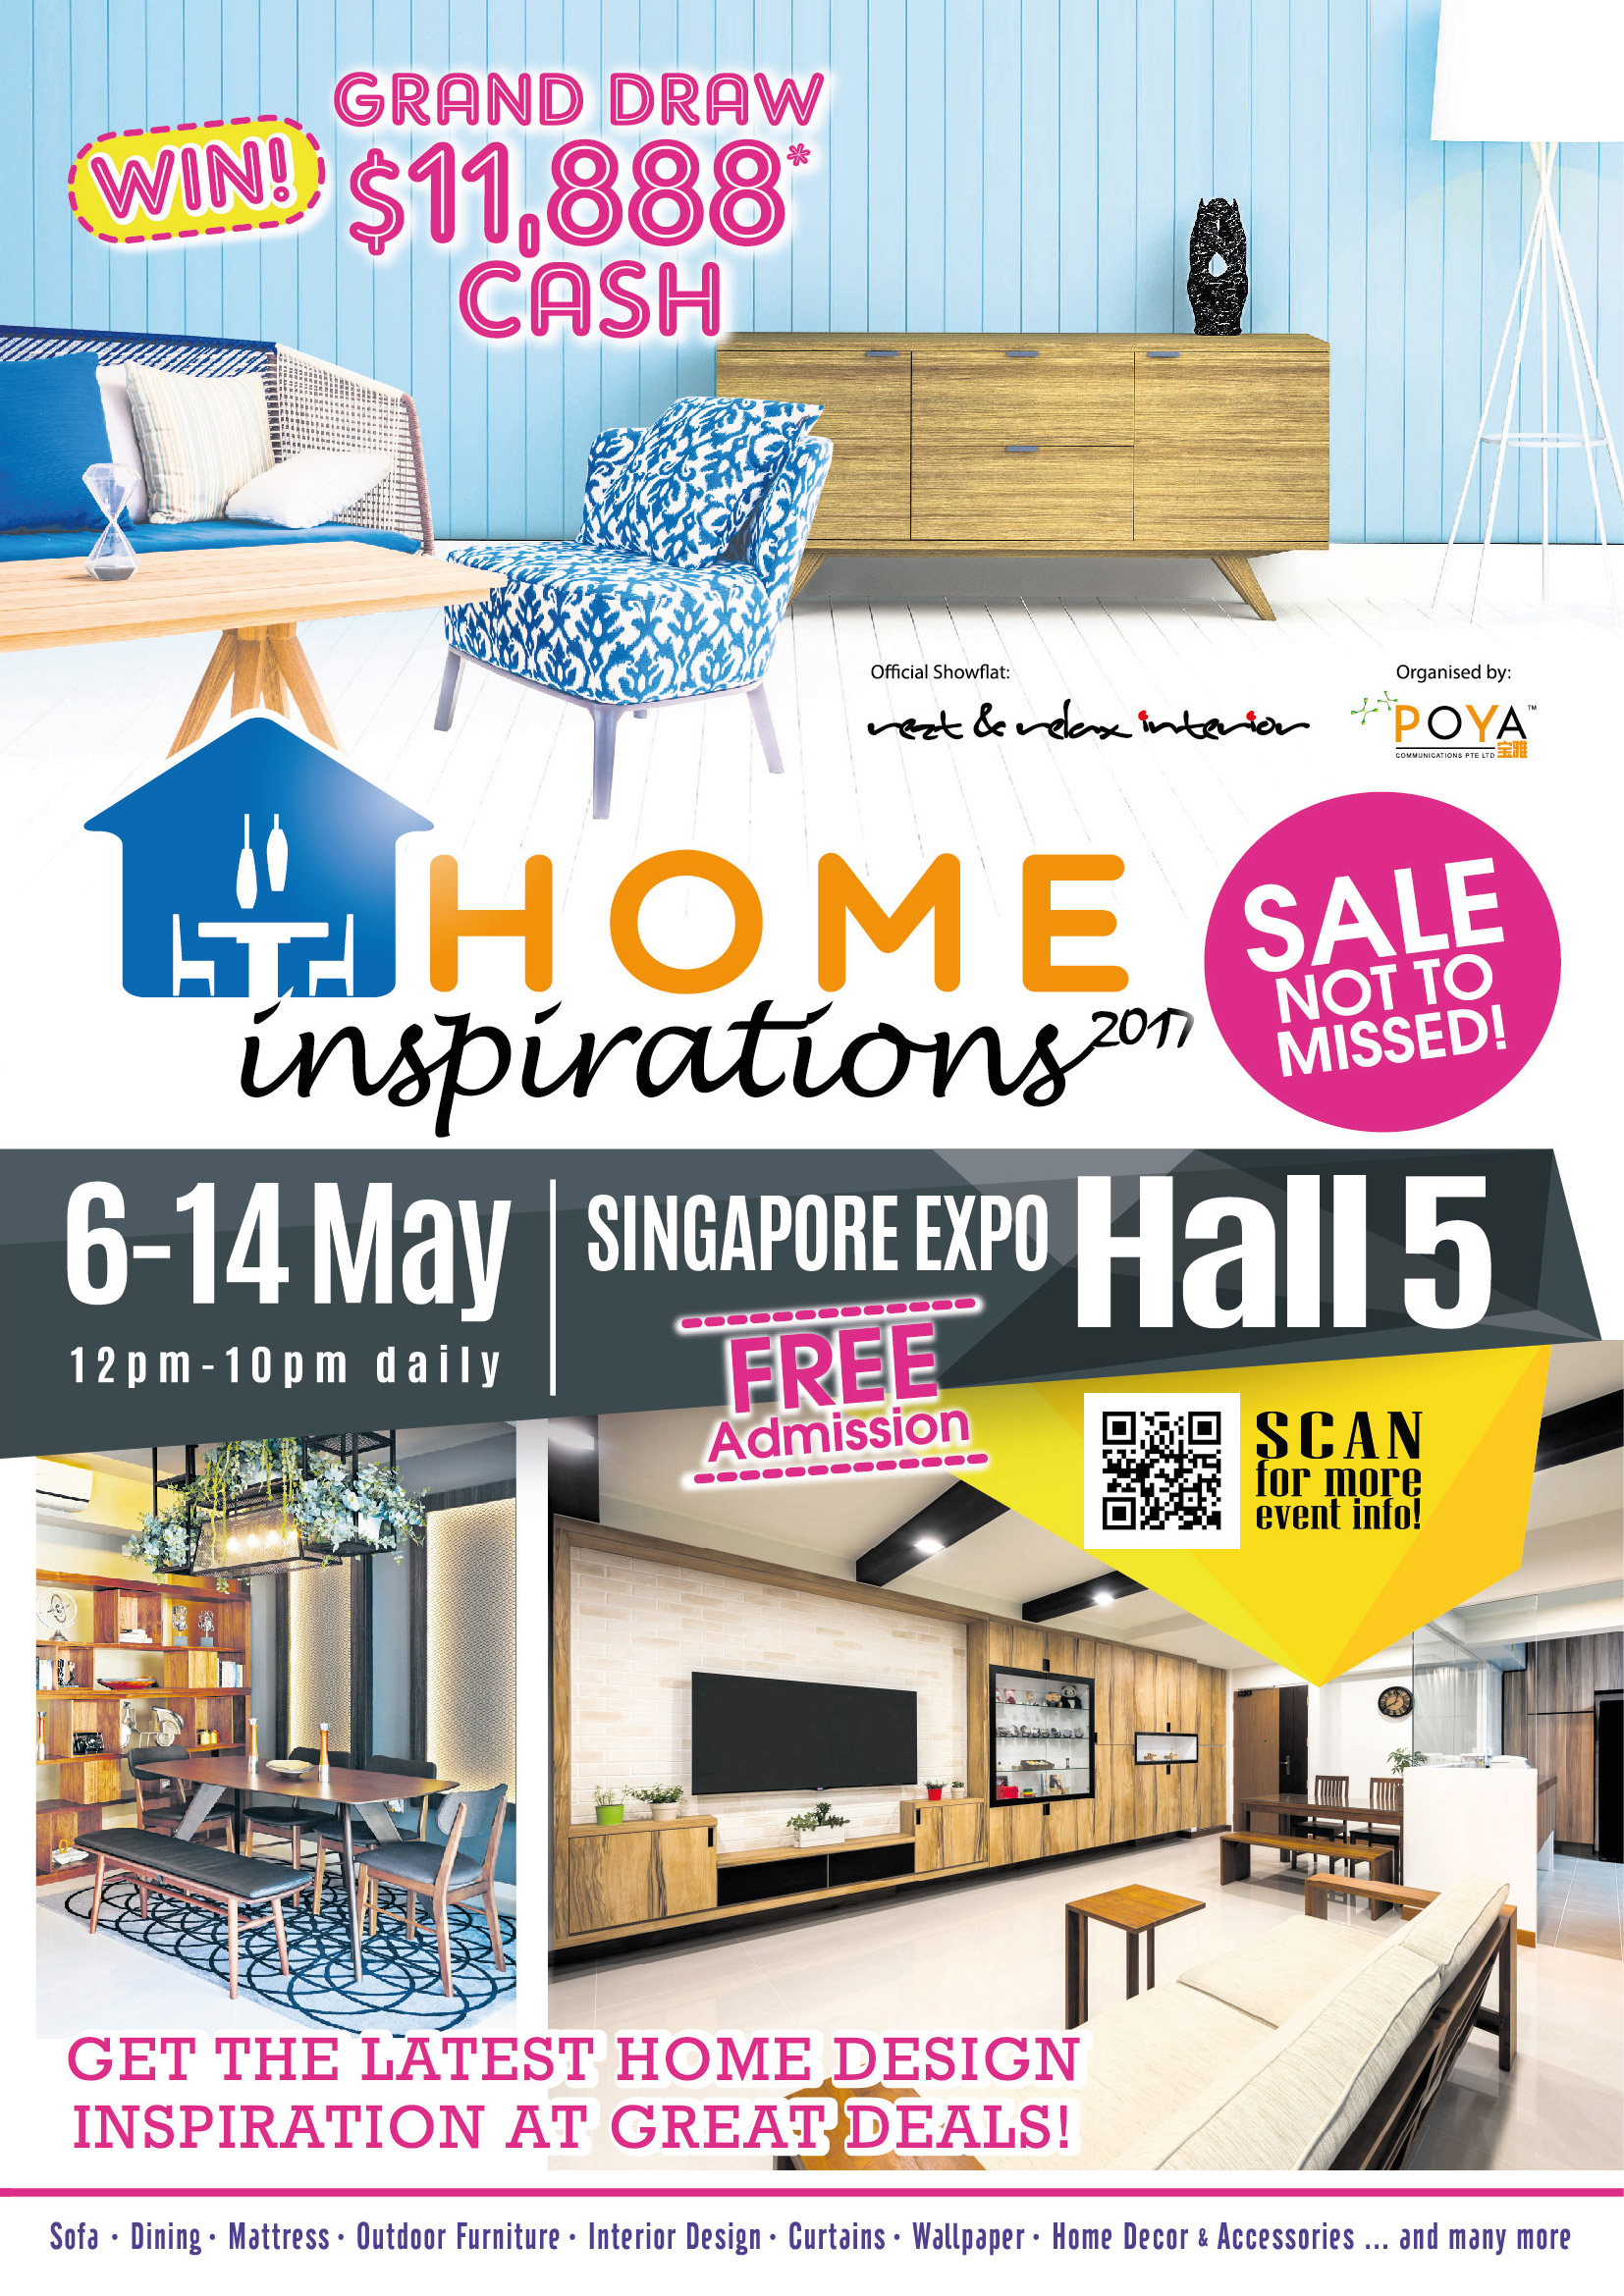 Home Decor Accessories Singapore 47 Home Inspirations 1000 1000 To 1000 May  1000 1000pm To 100pm